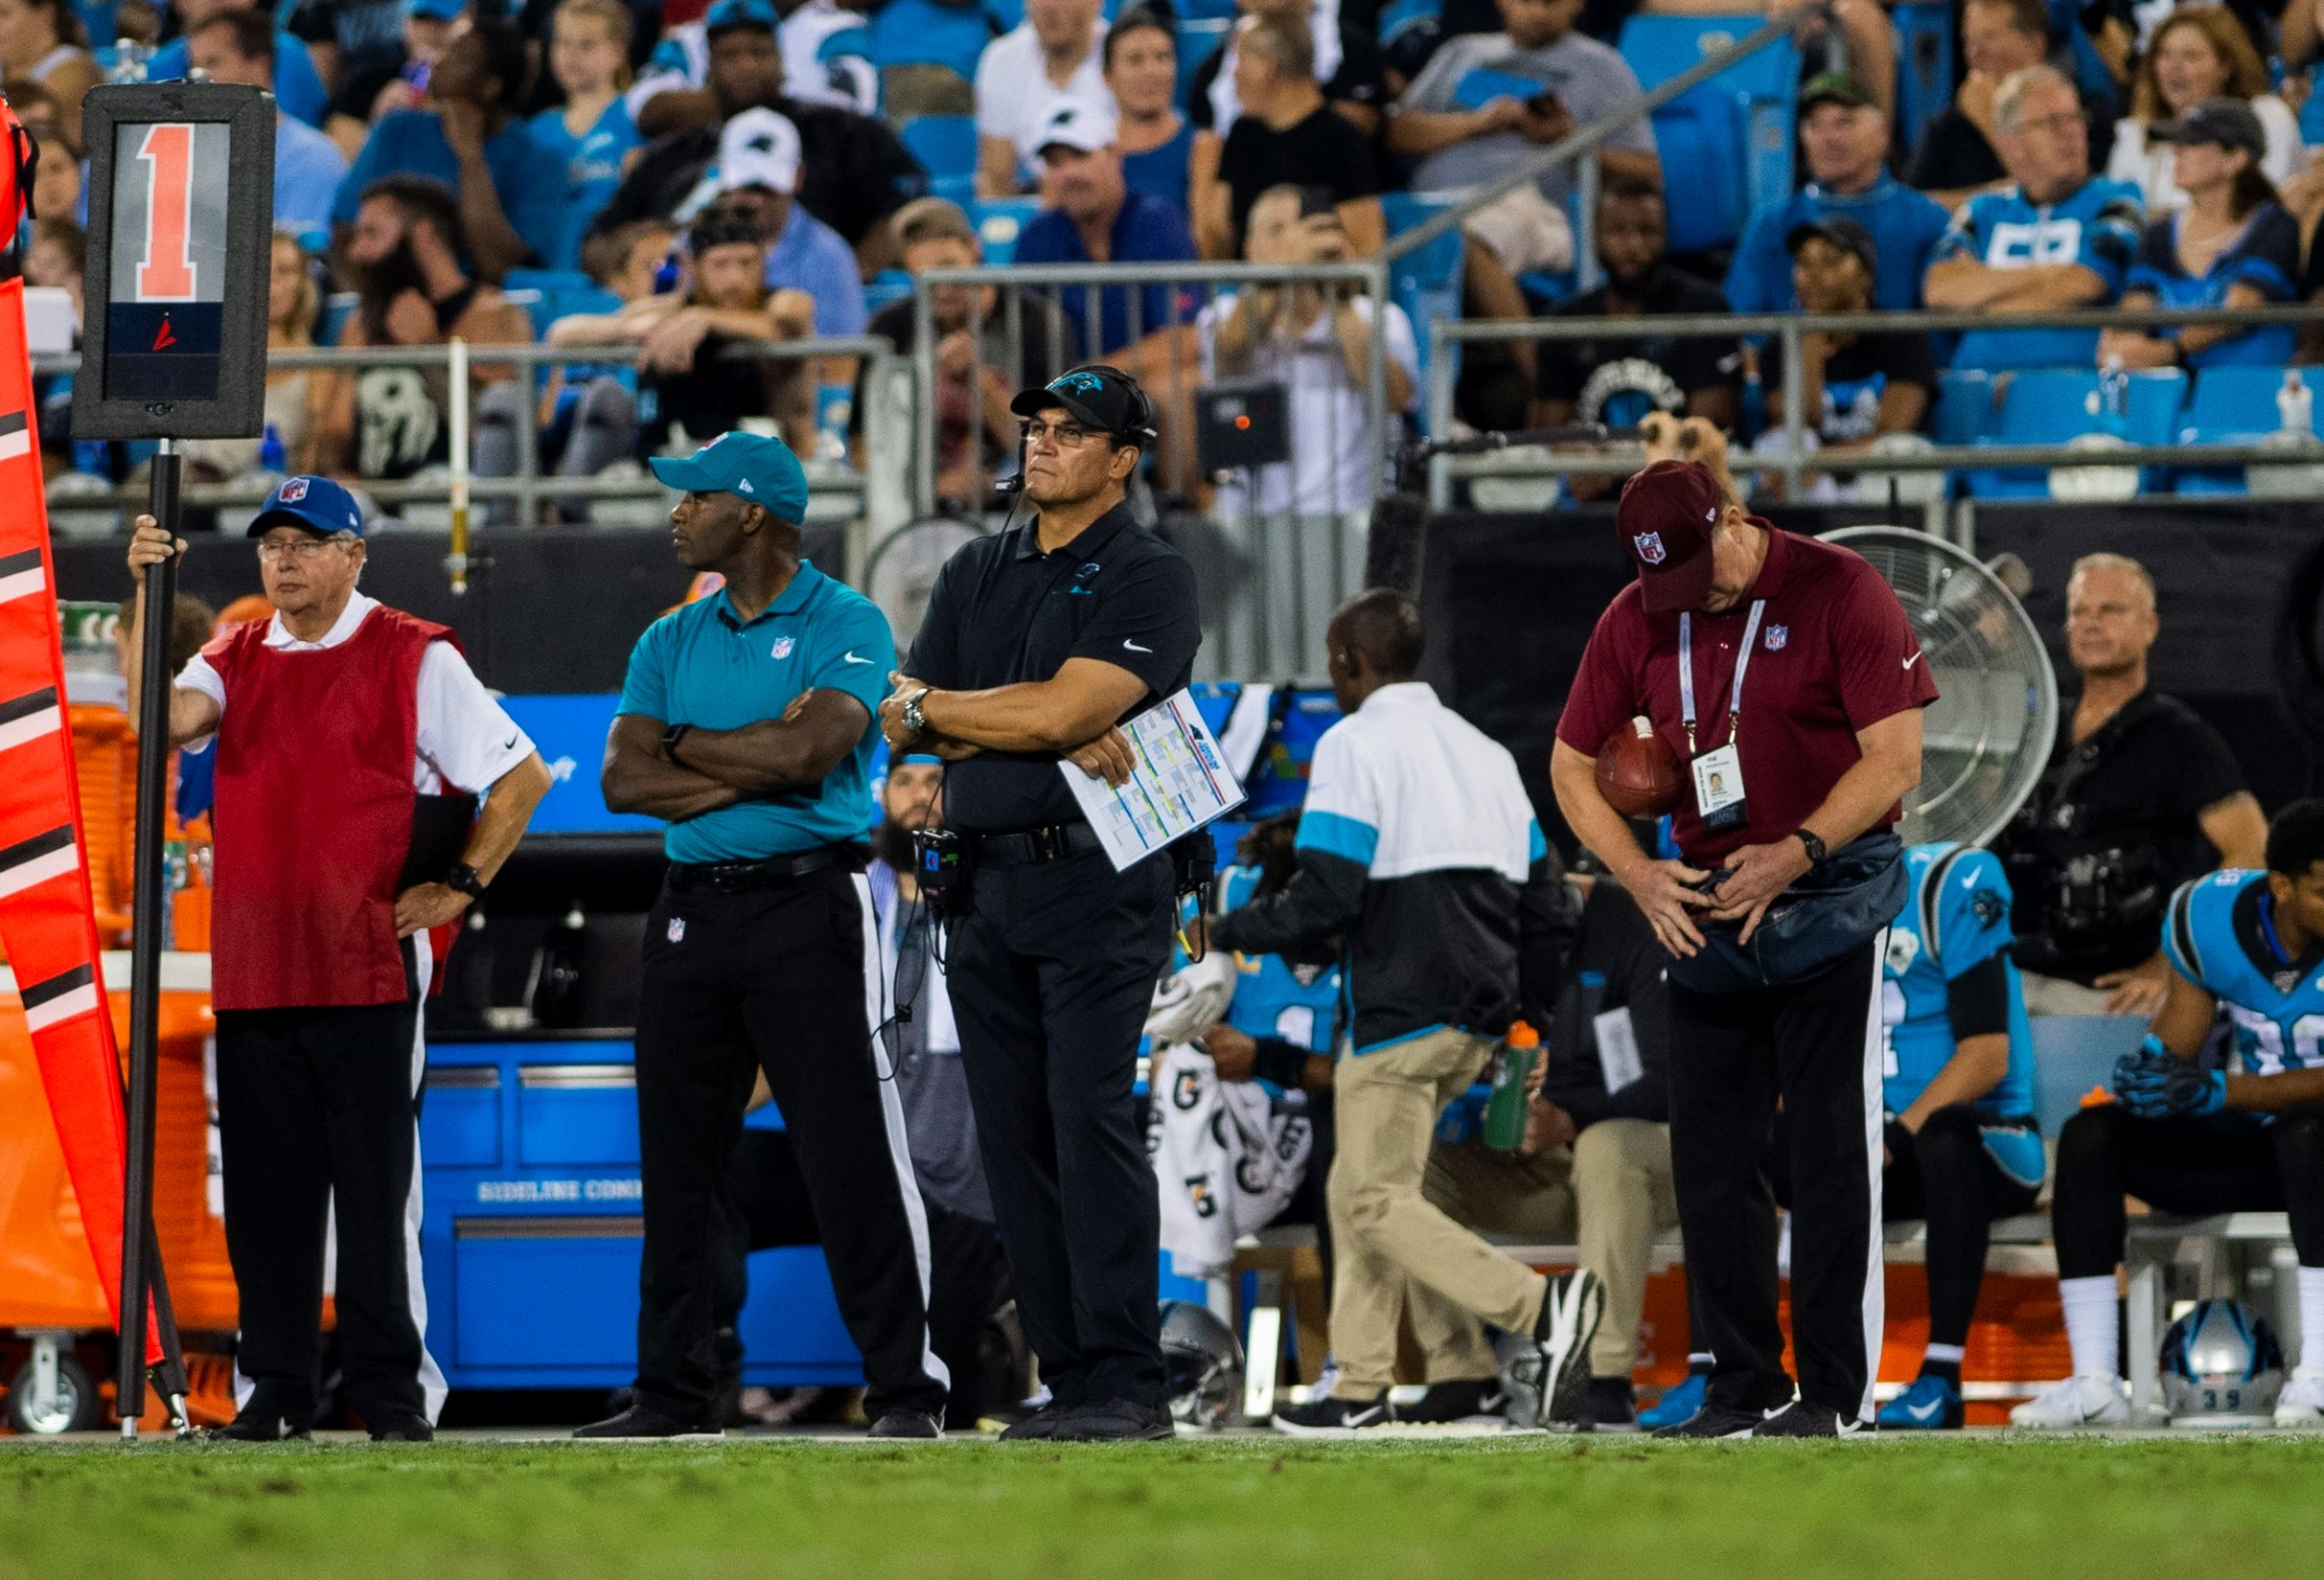 Carolina-Panthers-Ron-Rivera